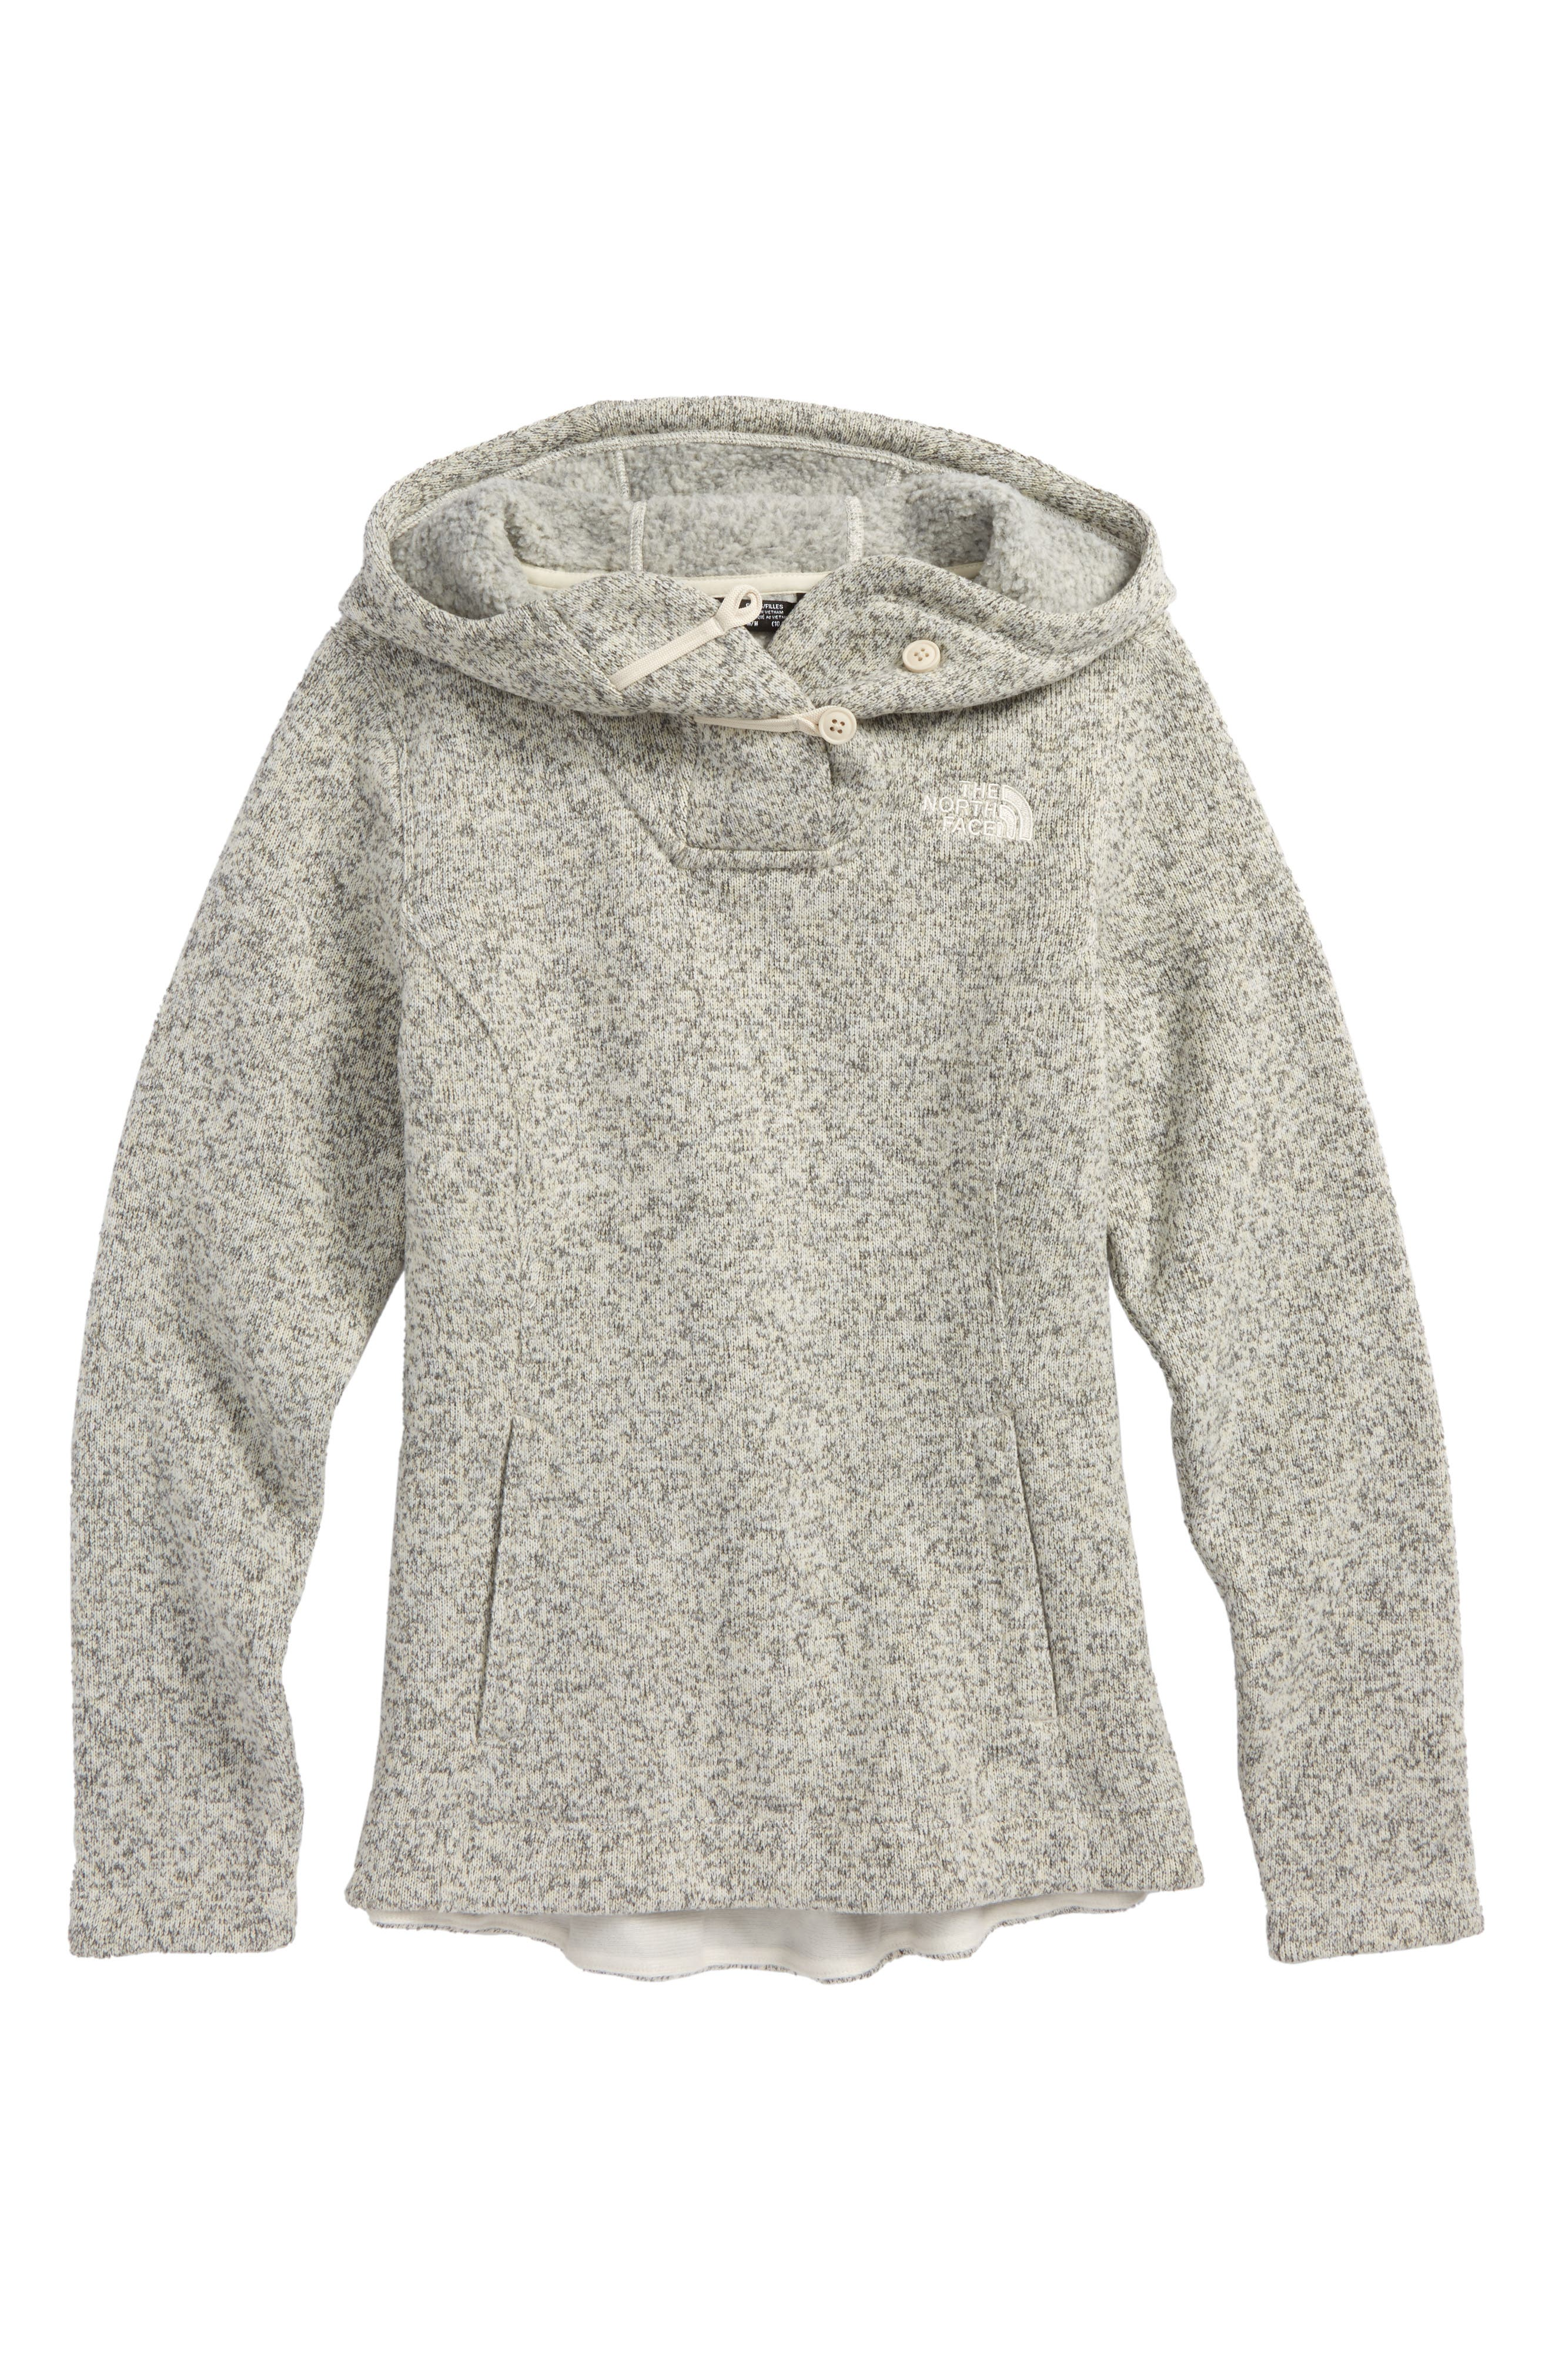 Girls The North Face Crescent Sunset Hoodie Size L (1416)  White